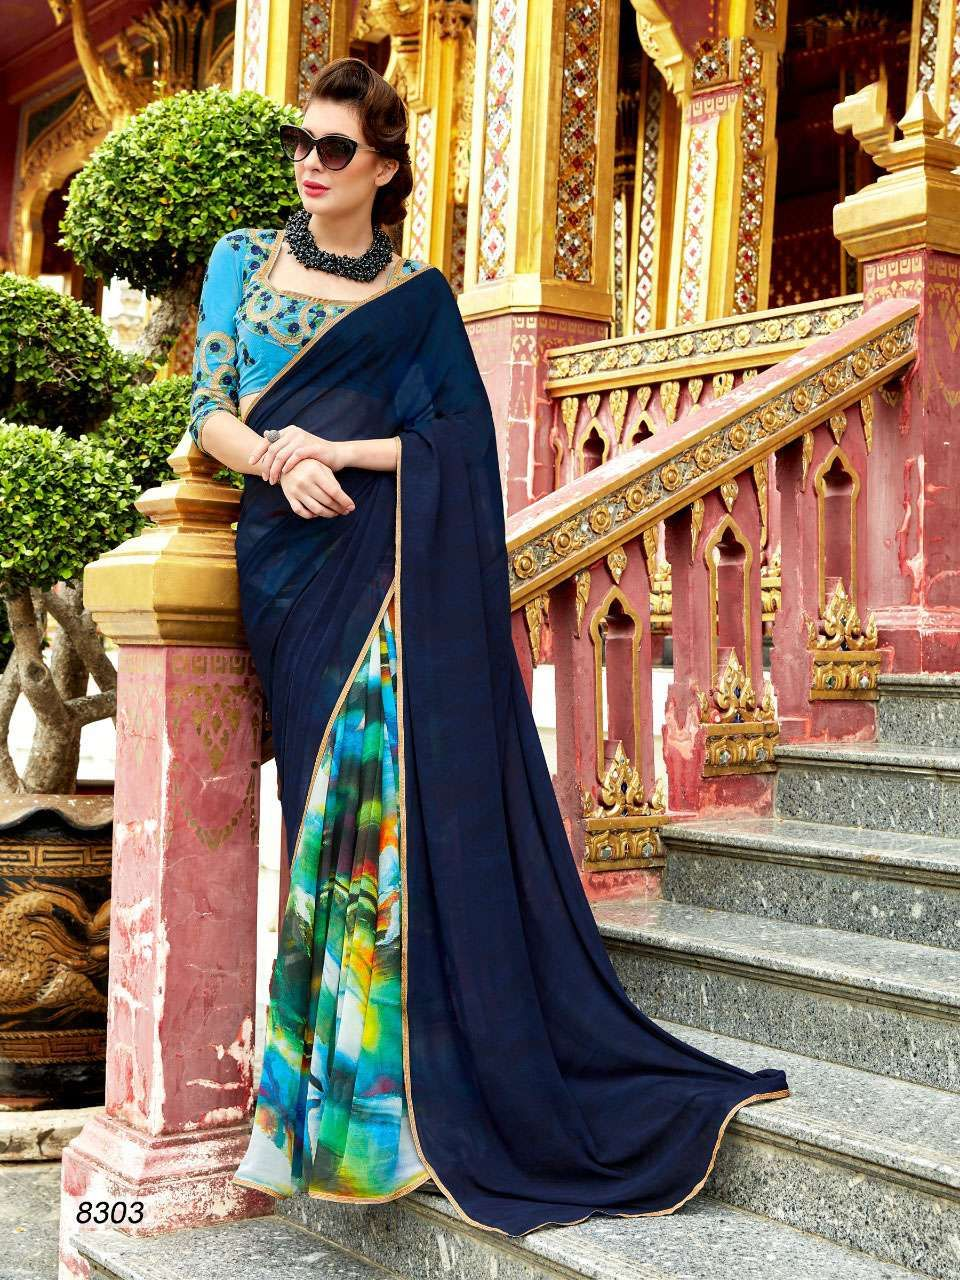 c52c26d77f buy surat saree wholesale under RS 1000 from sethnic online supplier ...